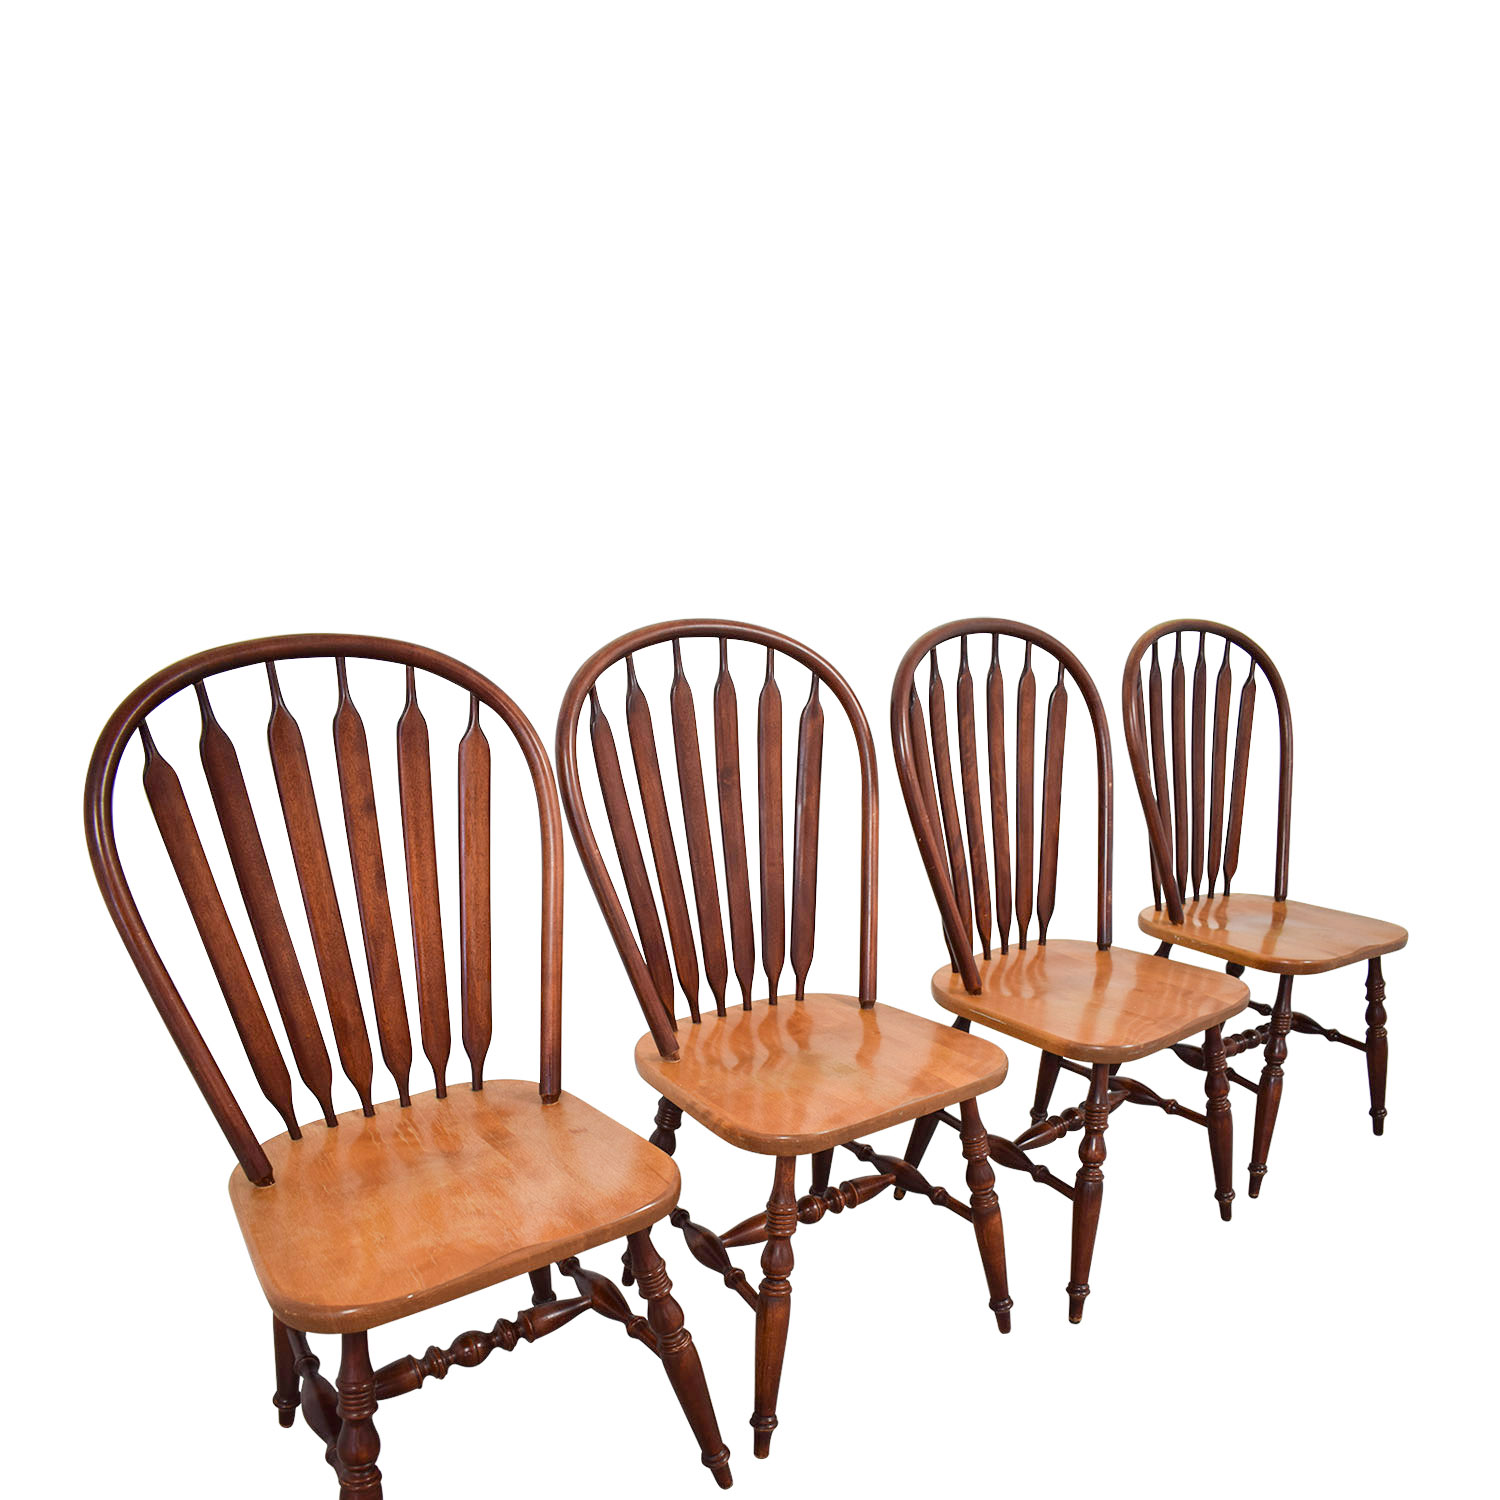 Canadel Canadel Windsor Wood Dining Chairs Chairs